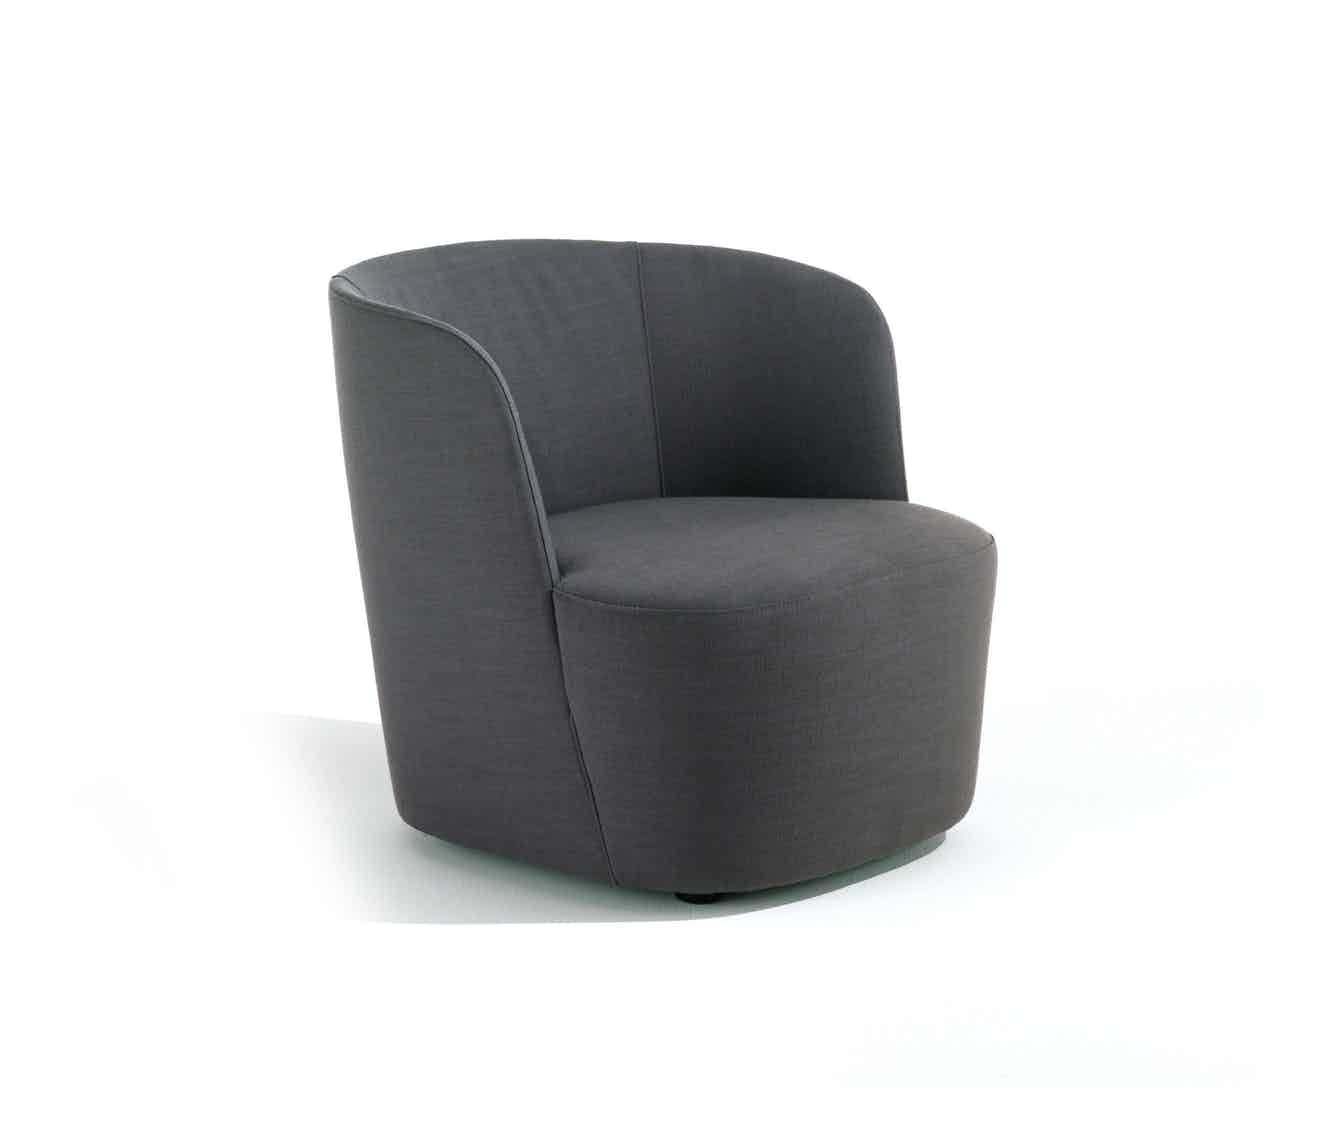 Lema-furniture-felix-armchair-angle-haute-living